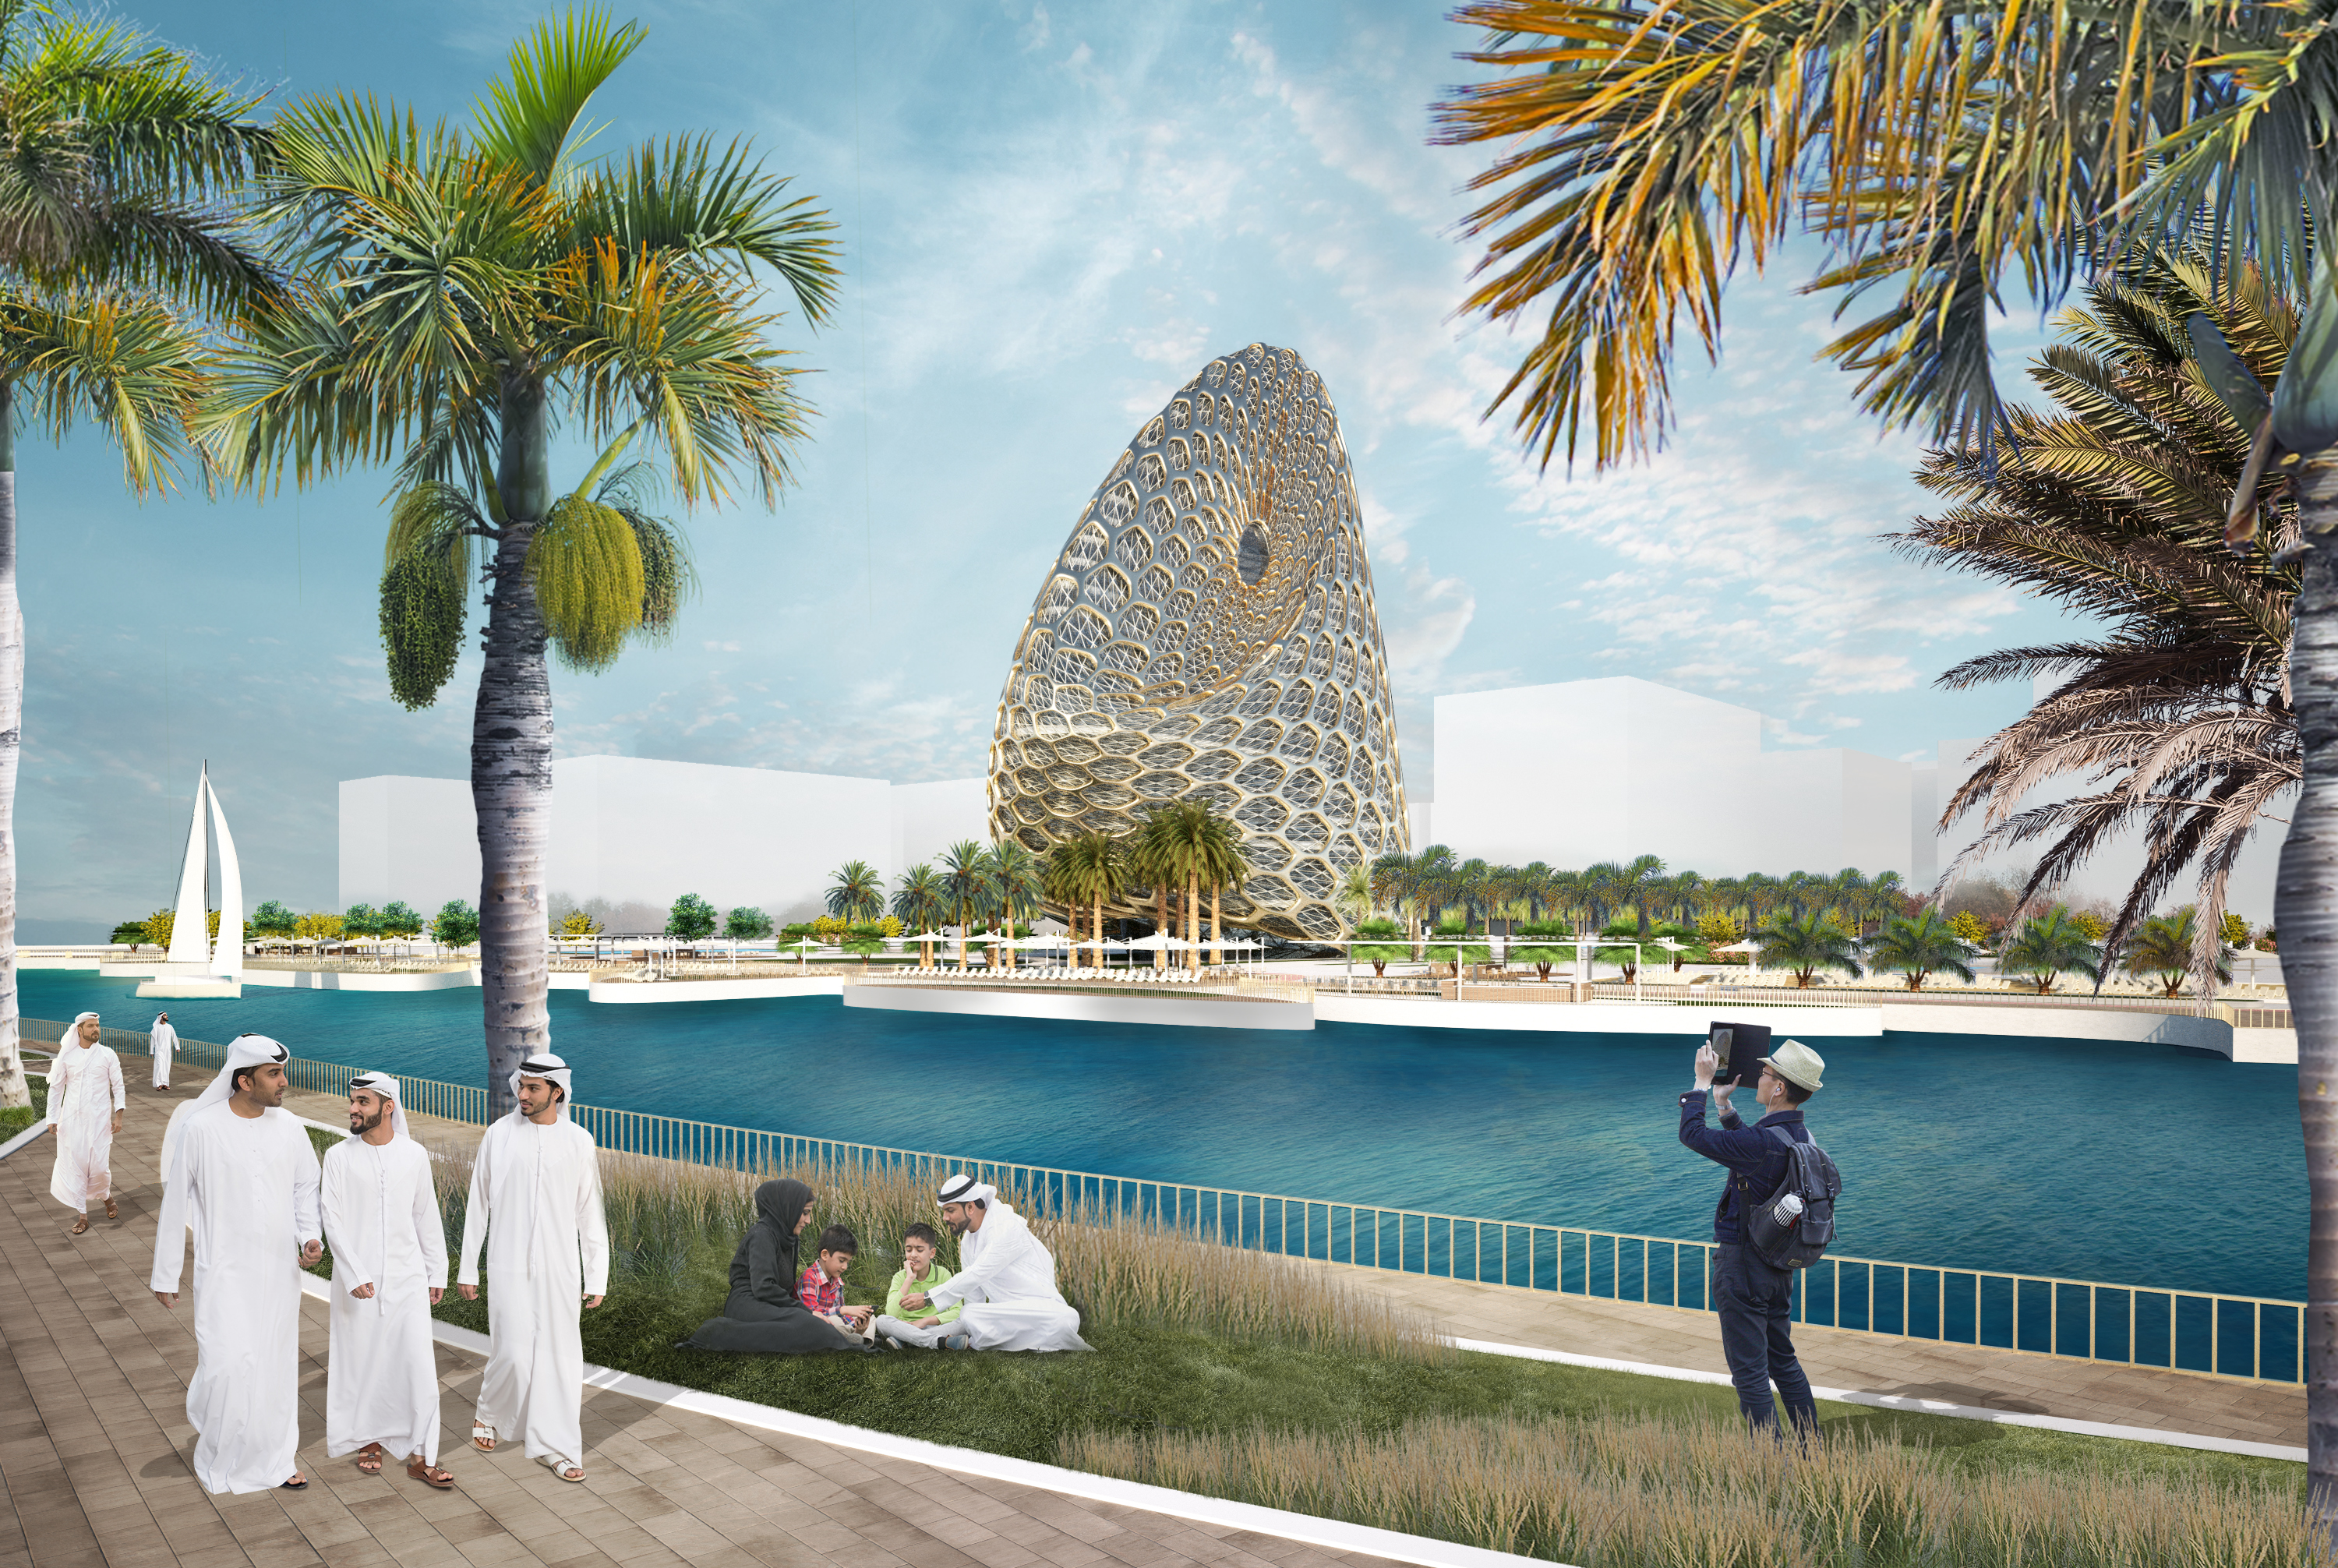 MIRAGE - THE LANDMARK DUBAI BIODIVERSITY CENTRE